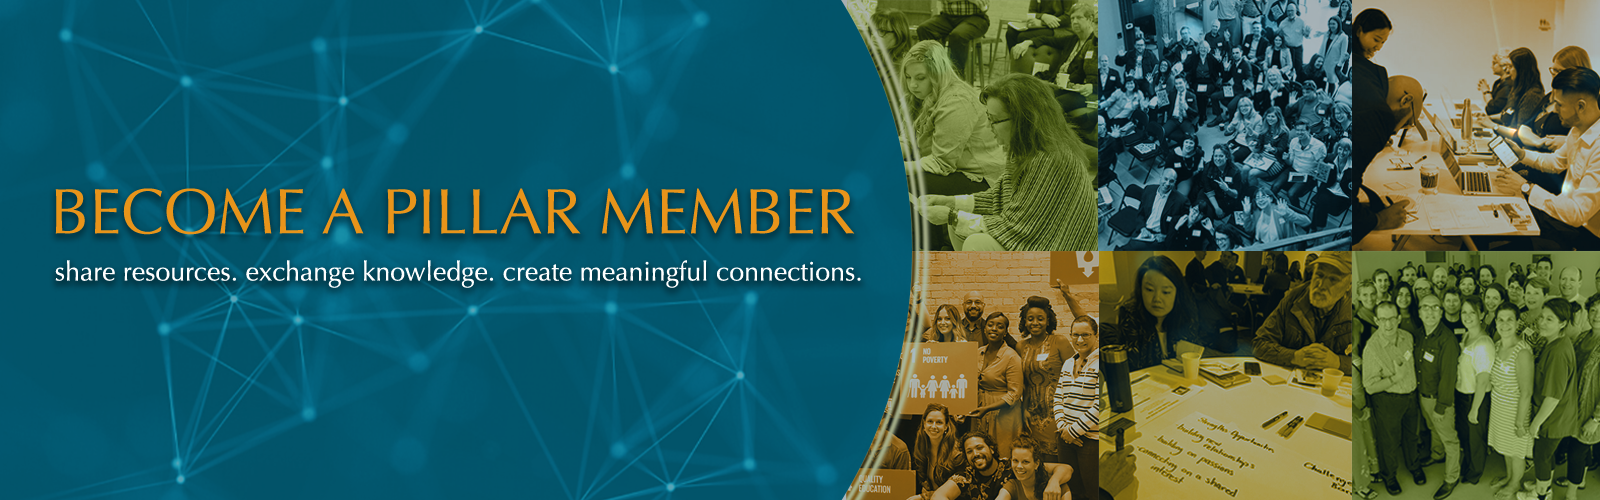 Become a Pillar Member: Share resources, exchange knowledge, and create meaningful connections